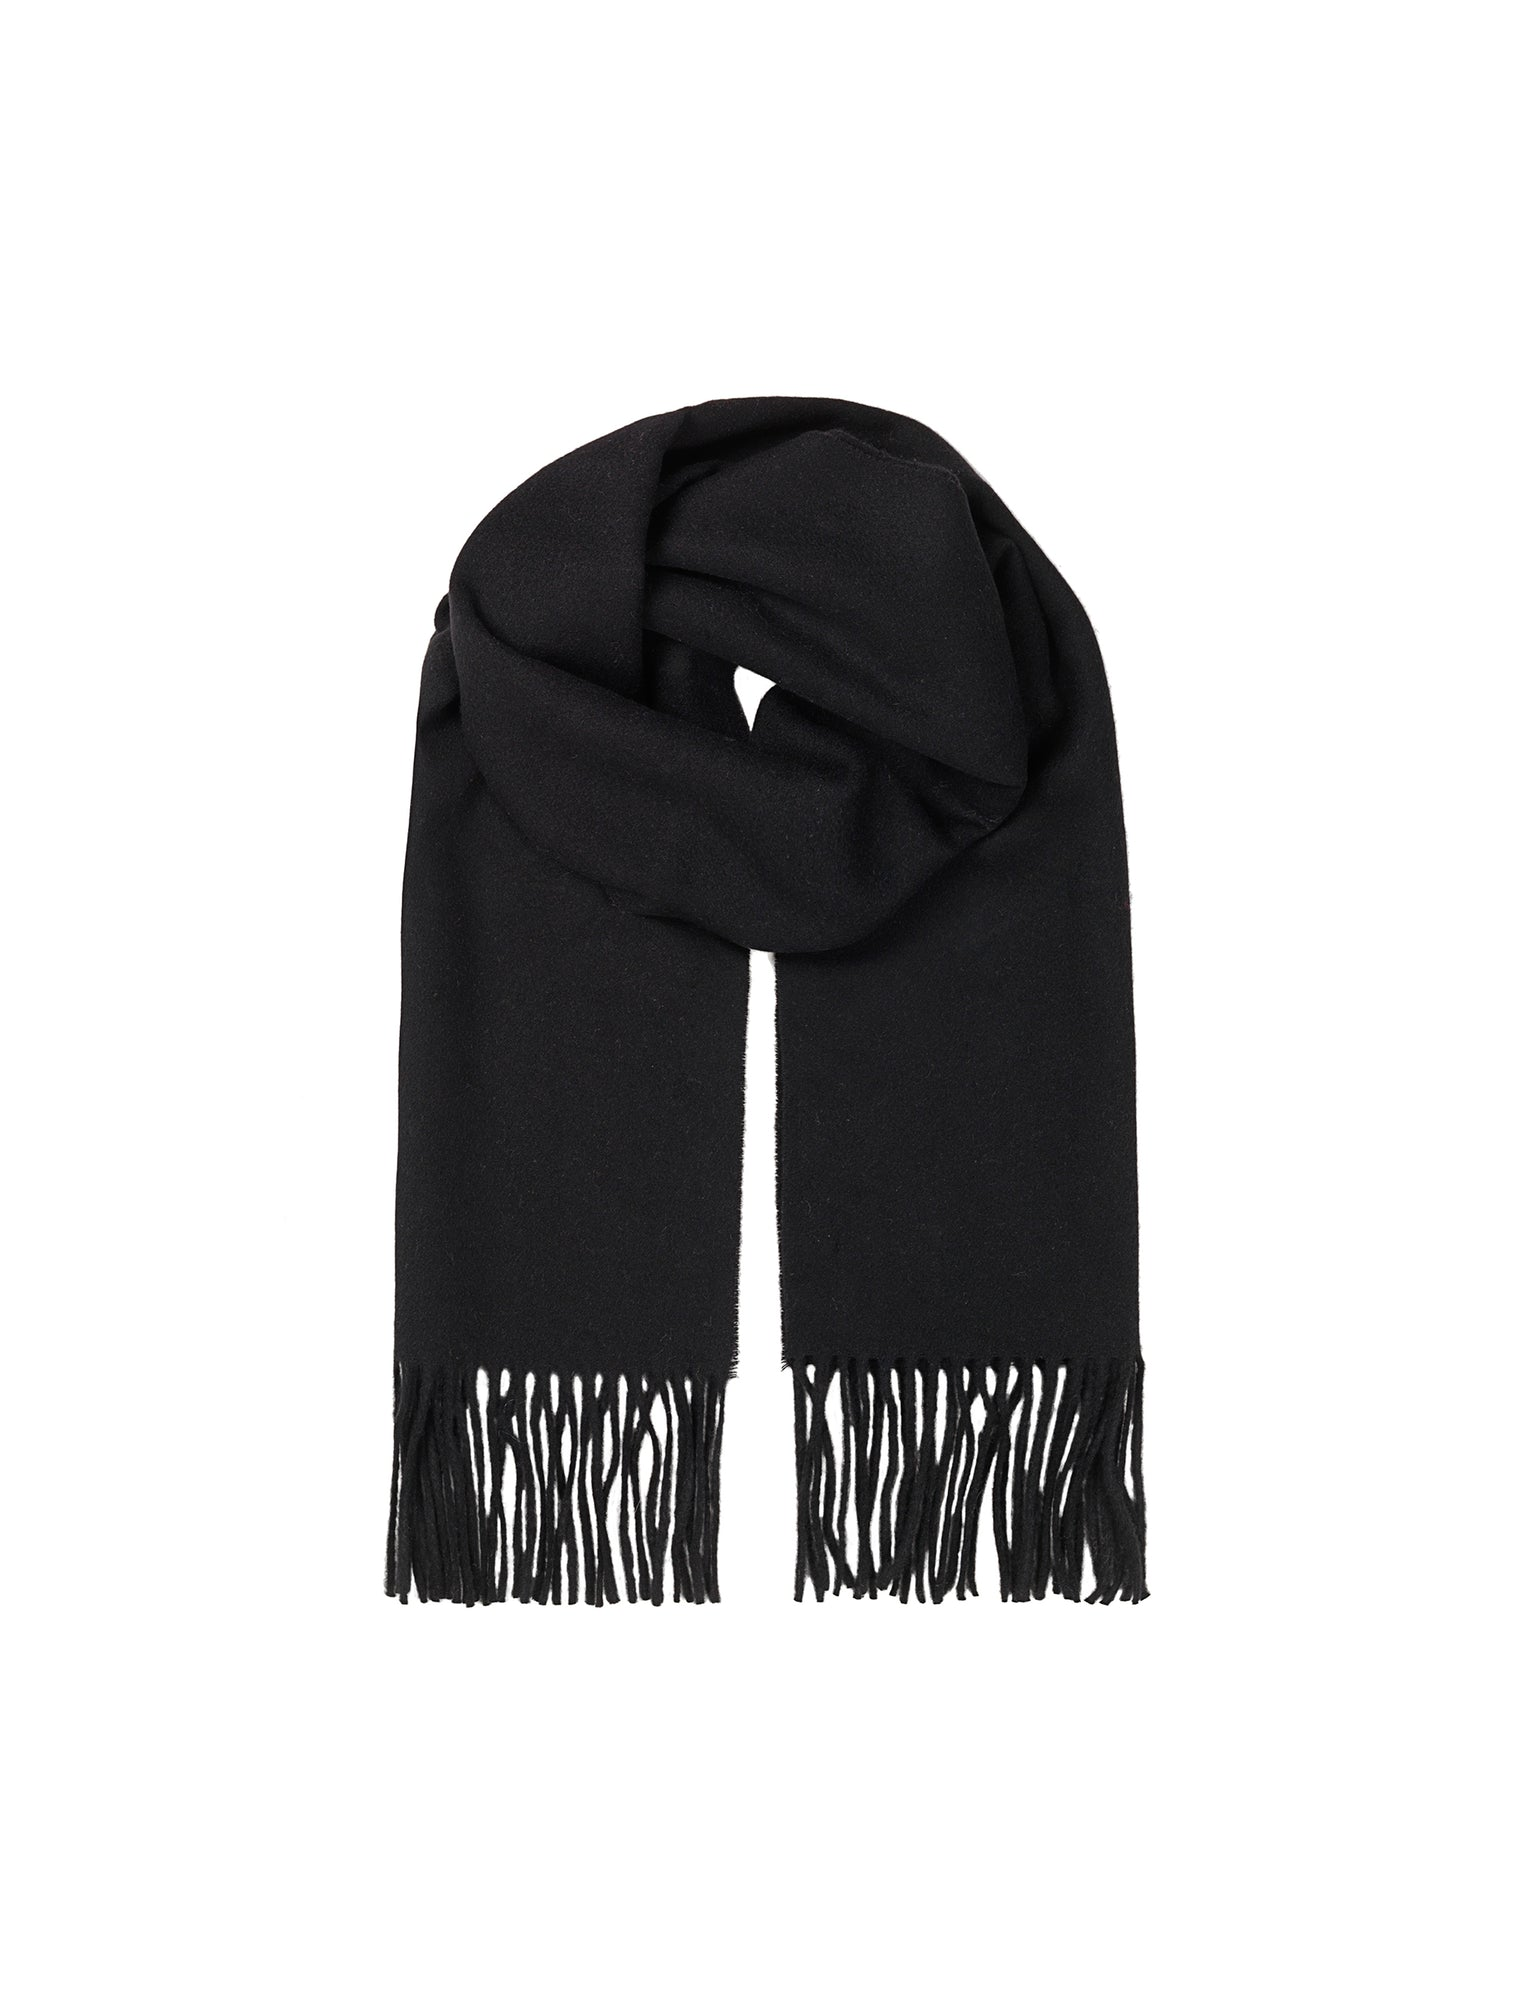 Laine Wool Amber, Black